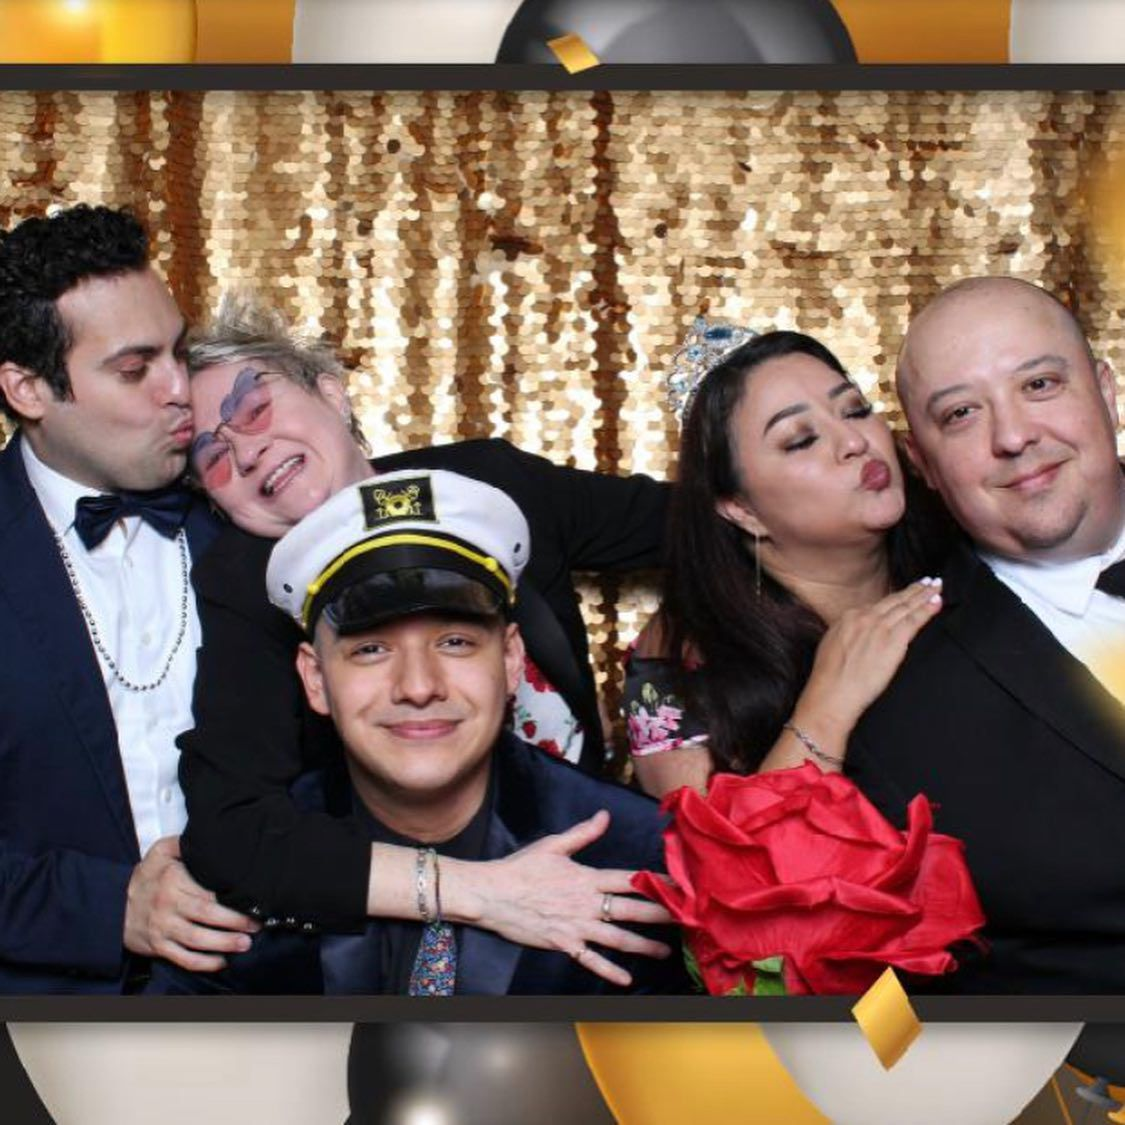 Three men and two women posing against a glittery gold backdrop in a photo booth